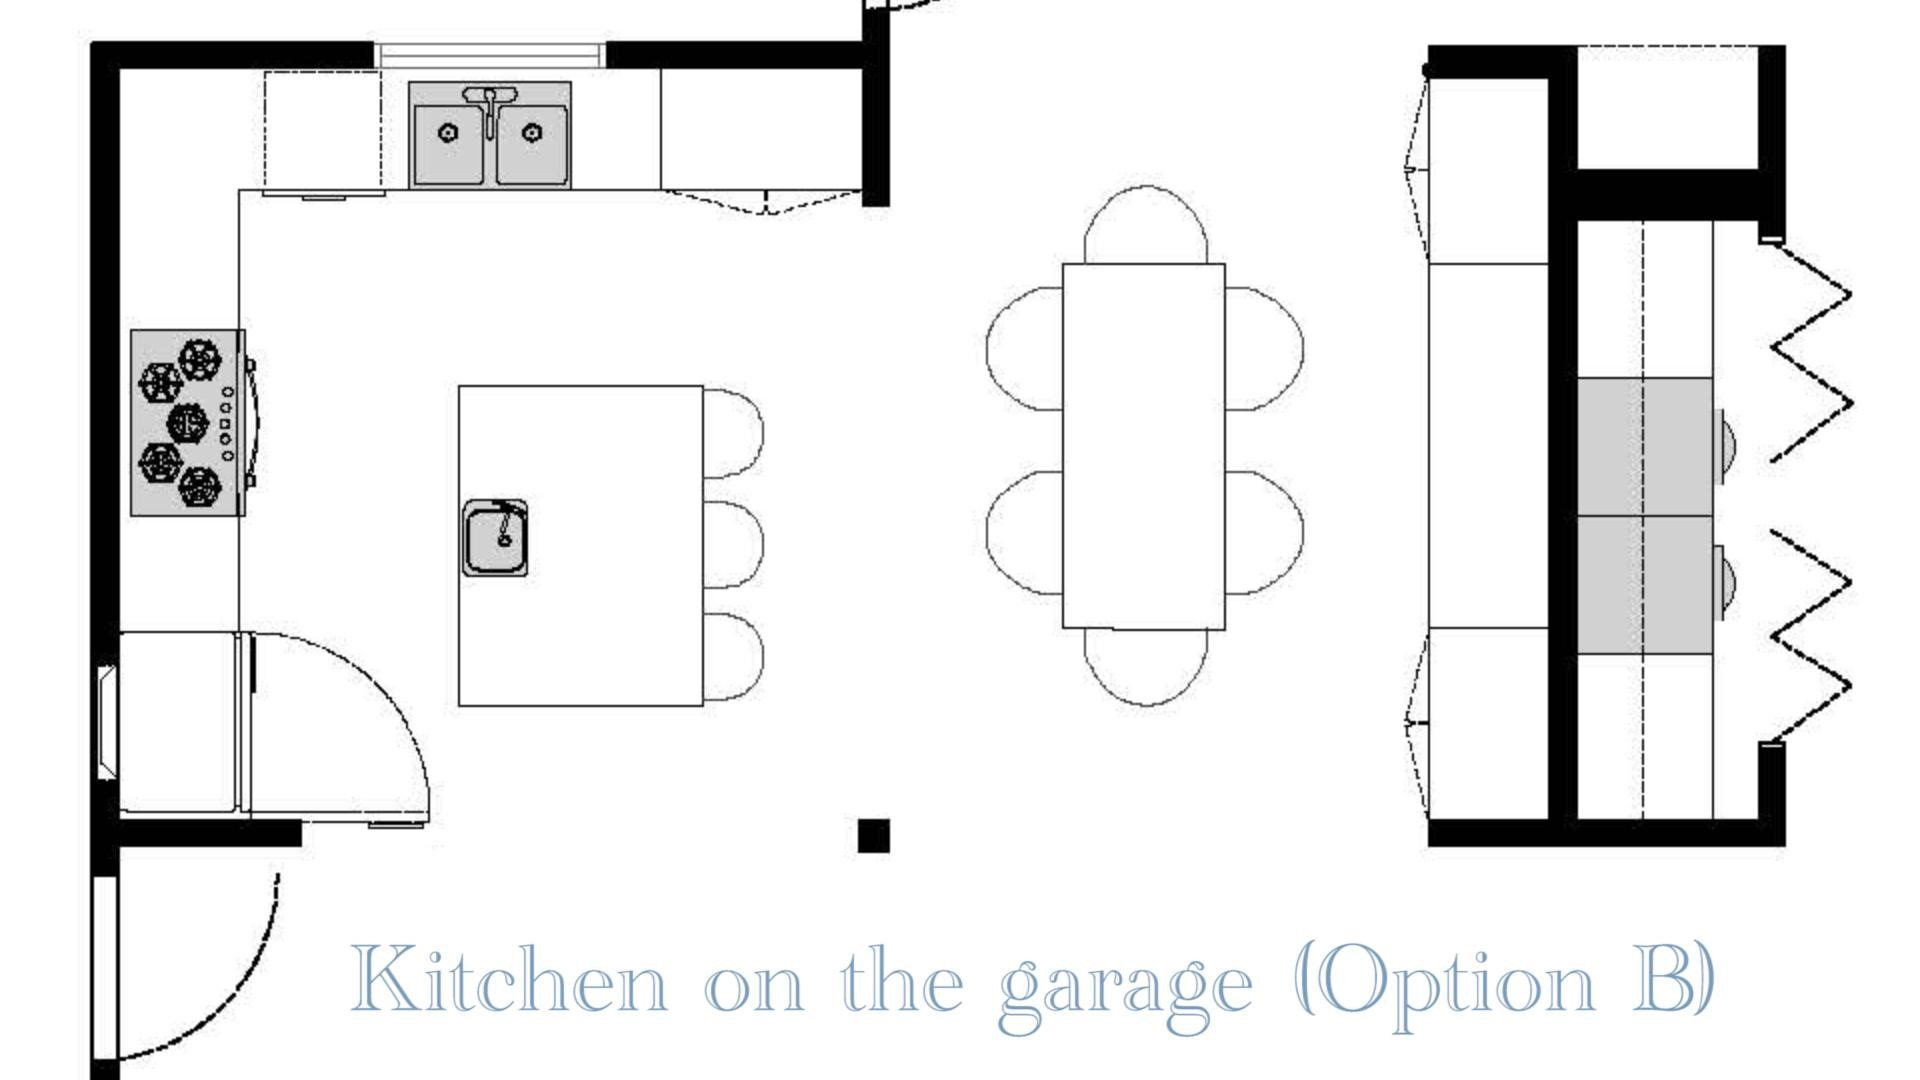 A mockup of the Option B open concept floor plans, which moves the kitchen area from the original home layout.